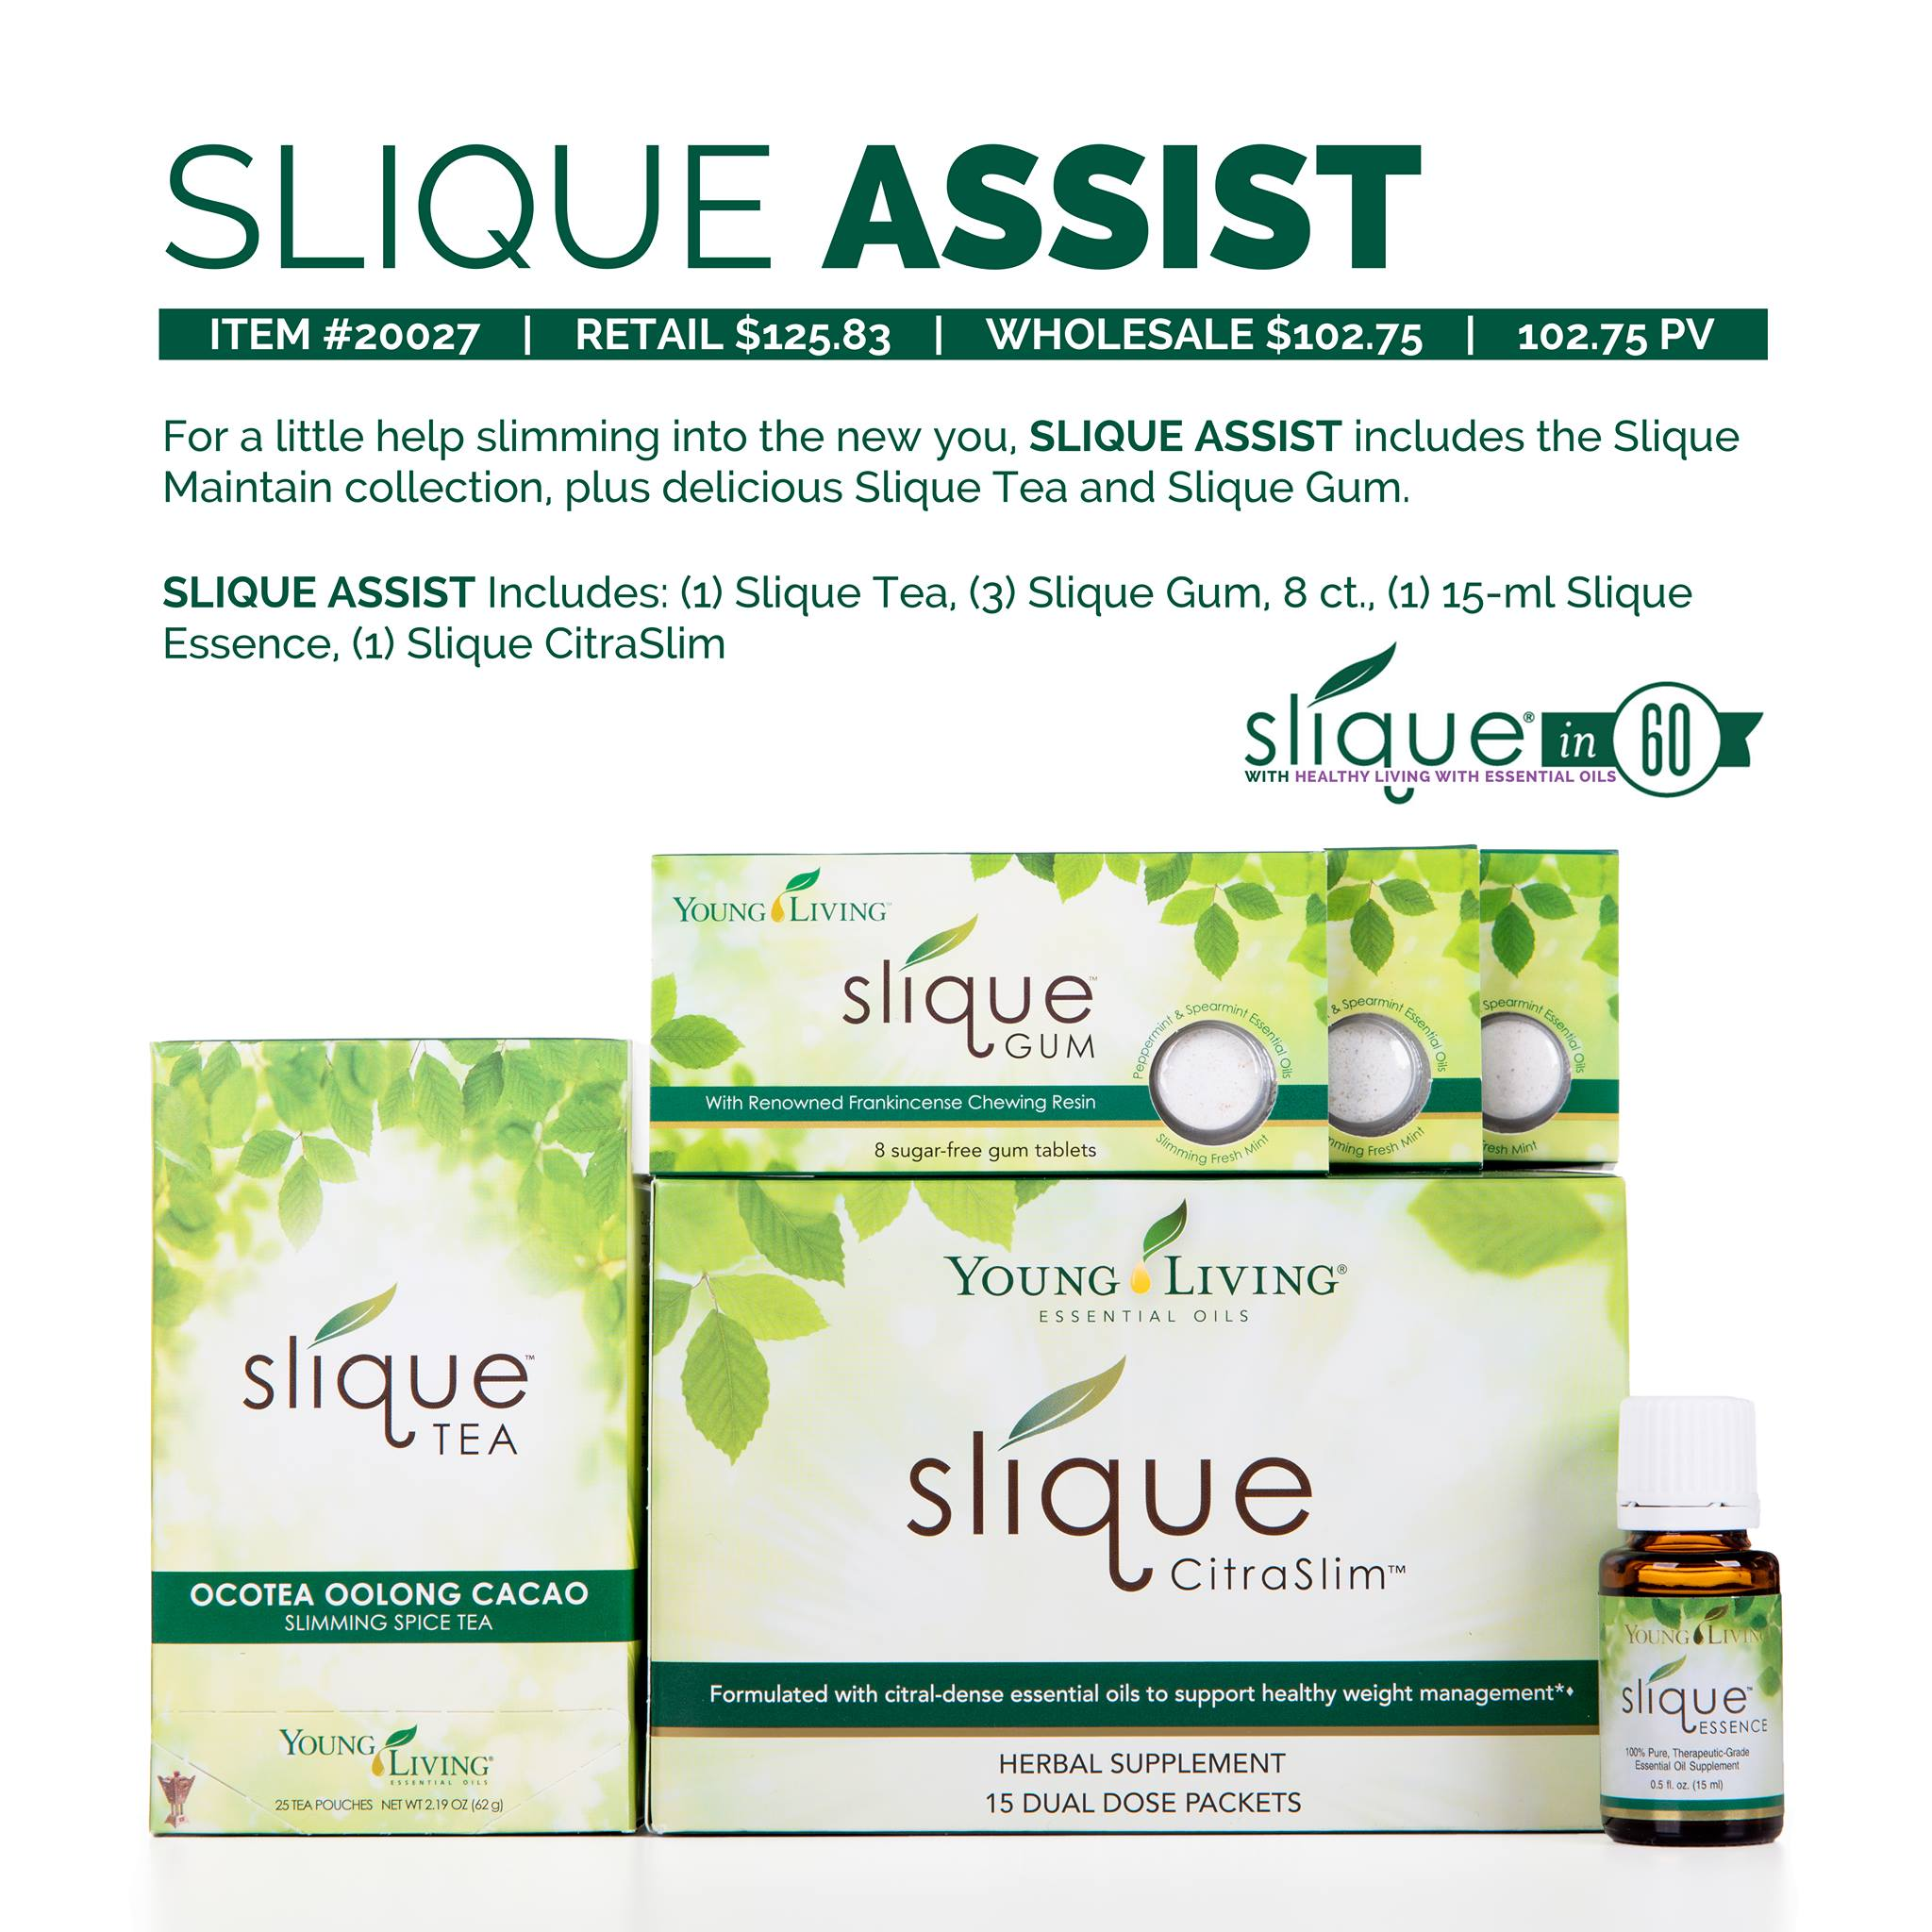 young living slique in 60 weight loss challenge